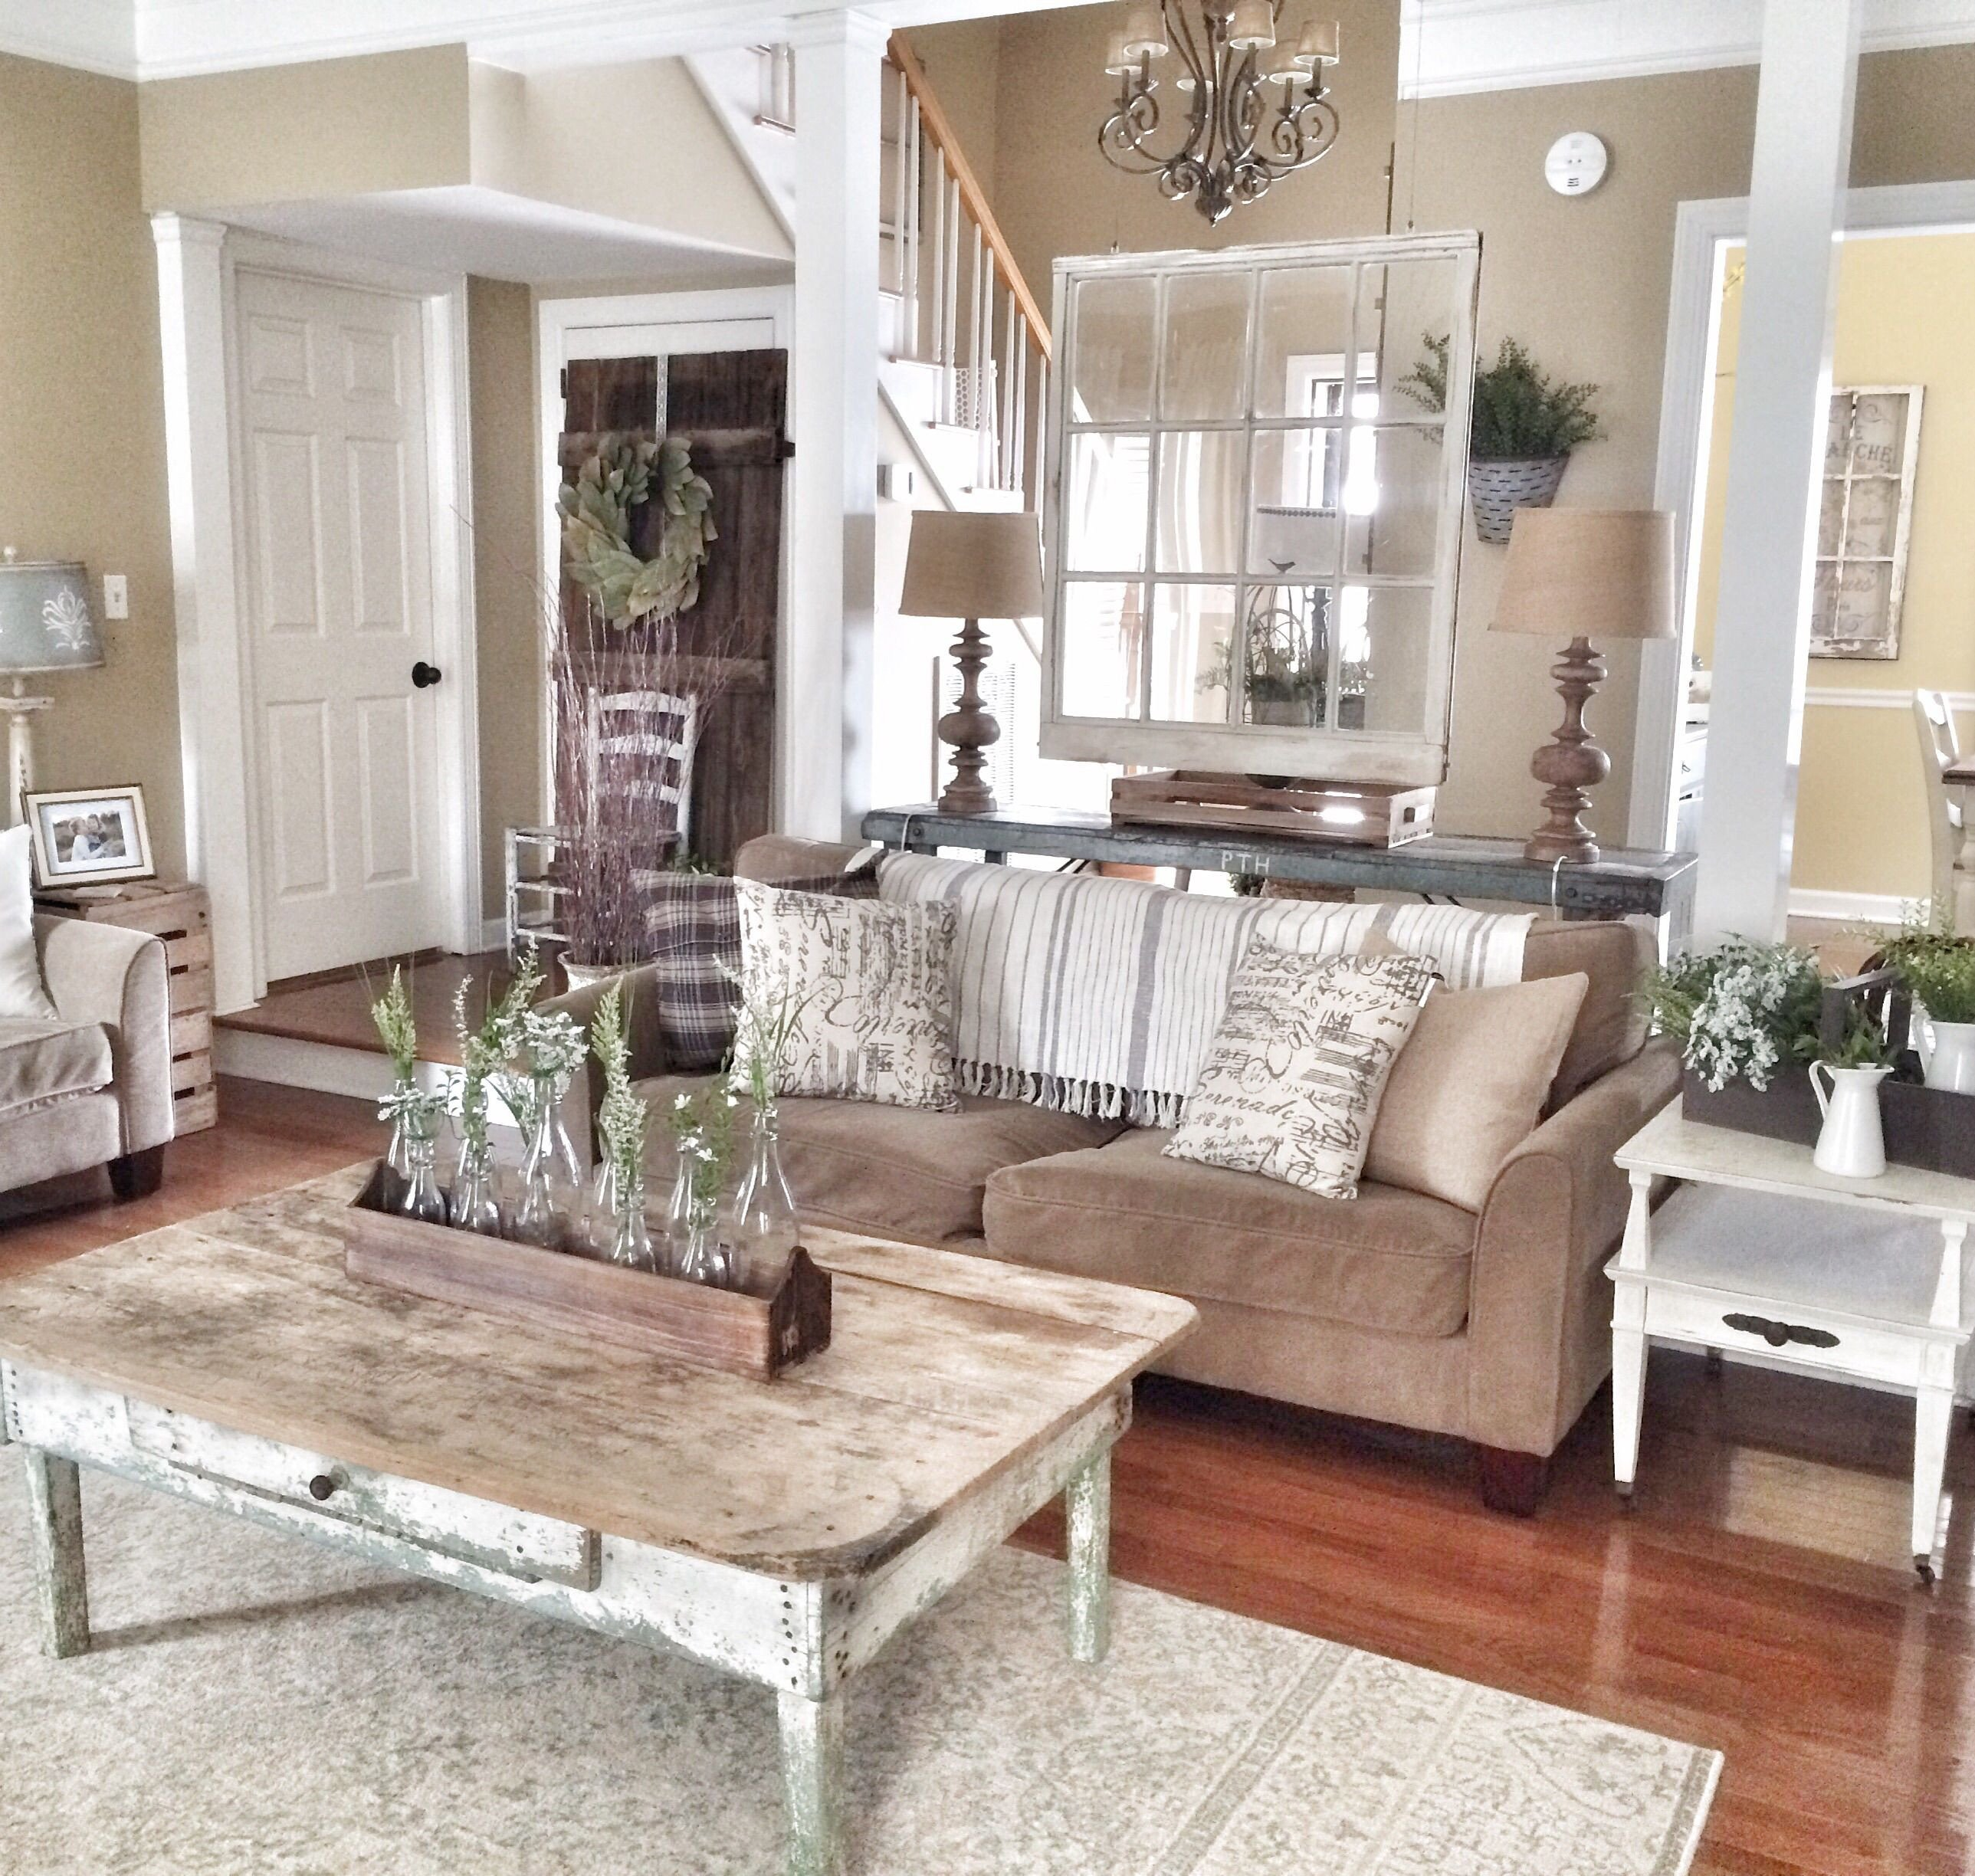 Rustic Chic Decor Living Room Luxury Chic Details for Cozy Rustic Living Room Décor